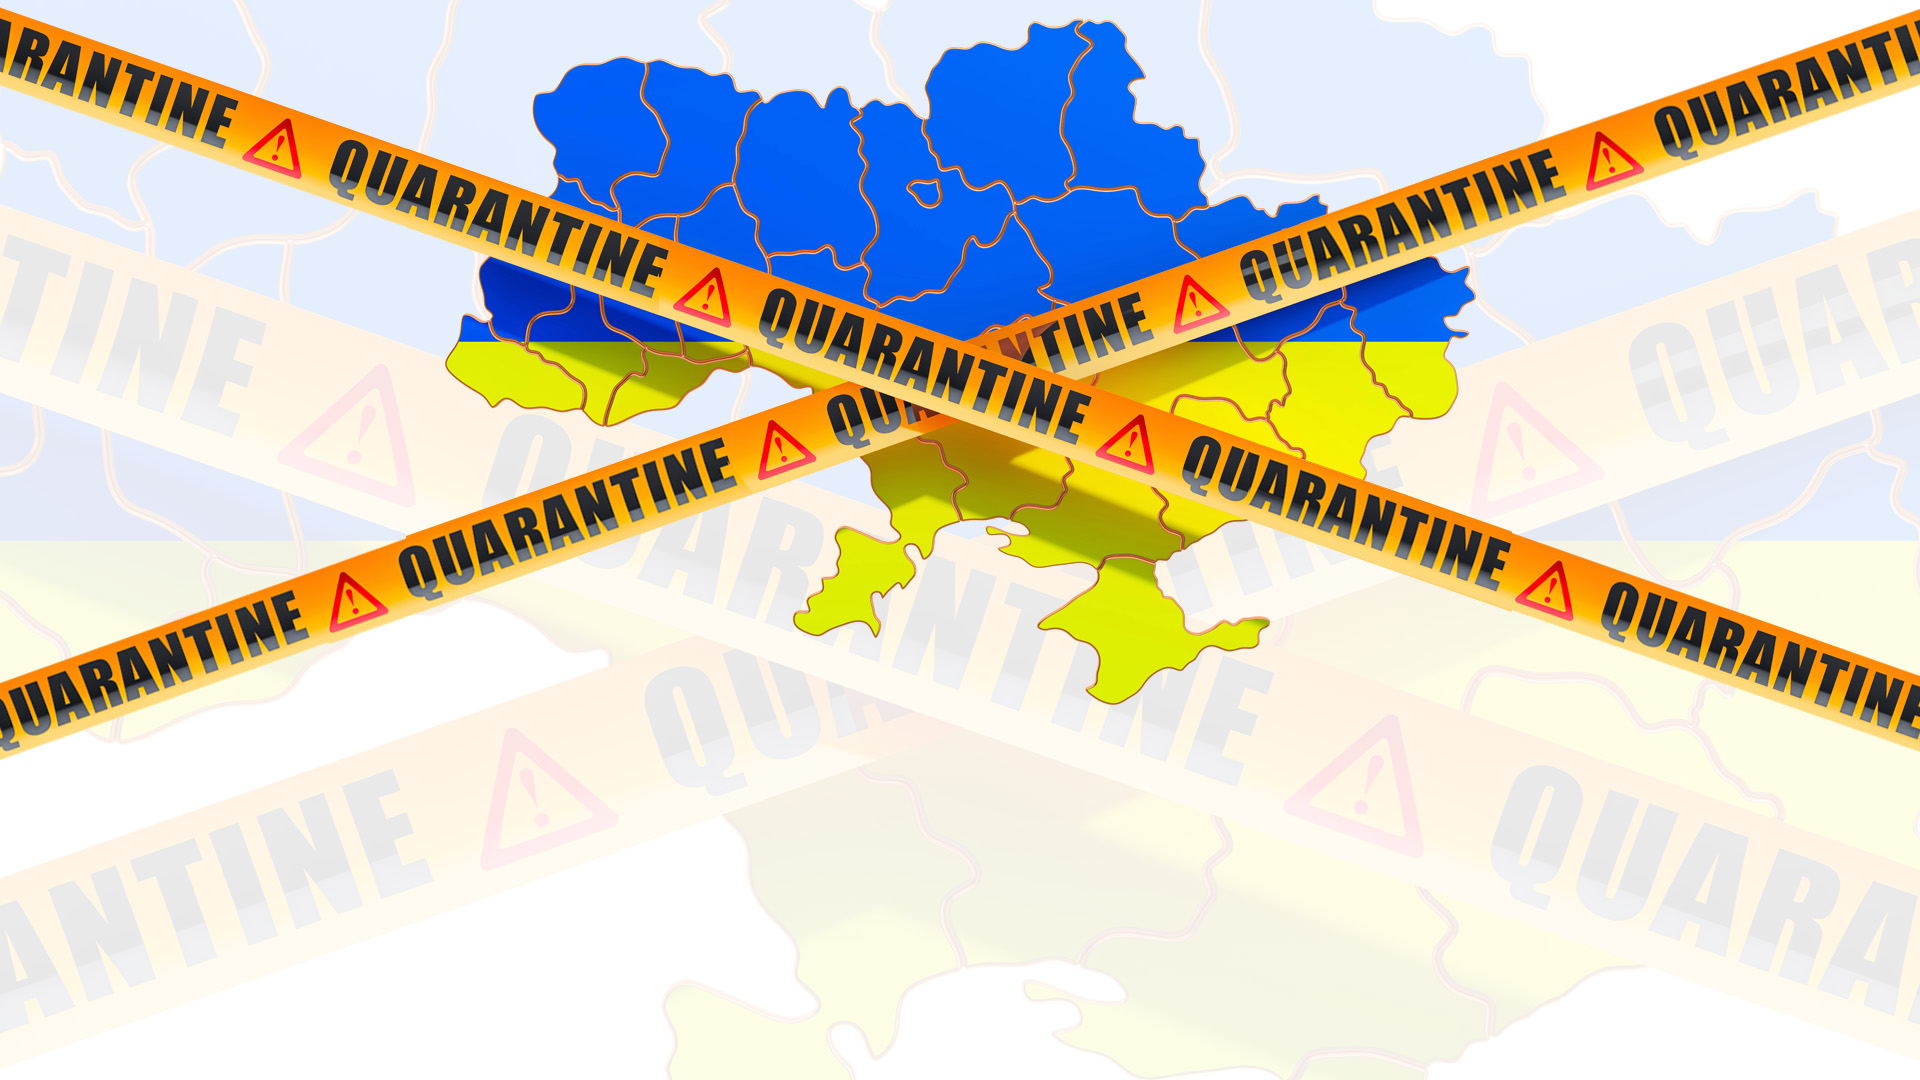 Ukraine introduces significant measures to contain Covid-19